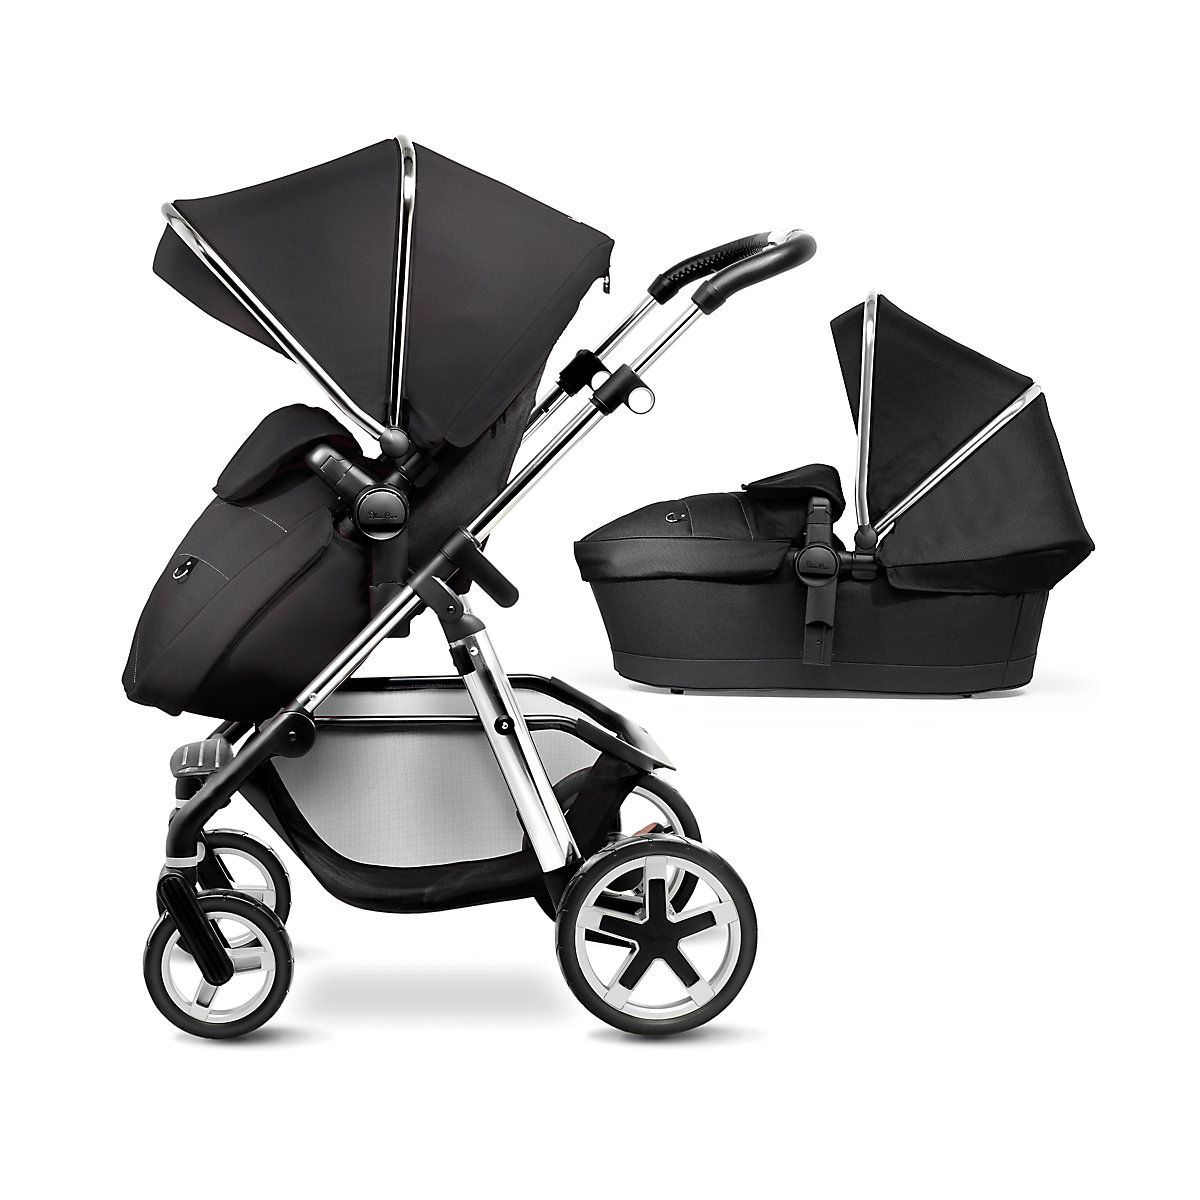 Mothercare Roam pram and pushchair travel system comes